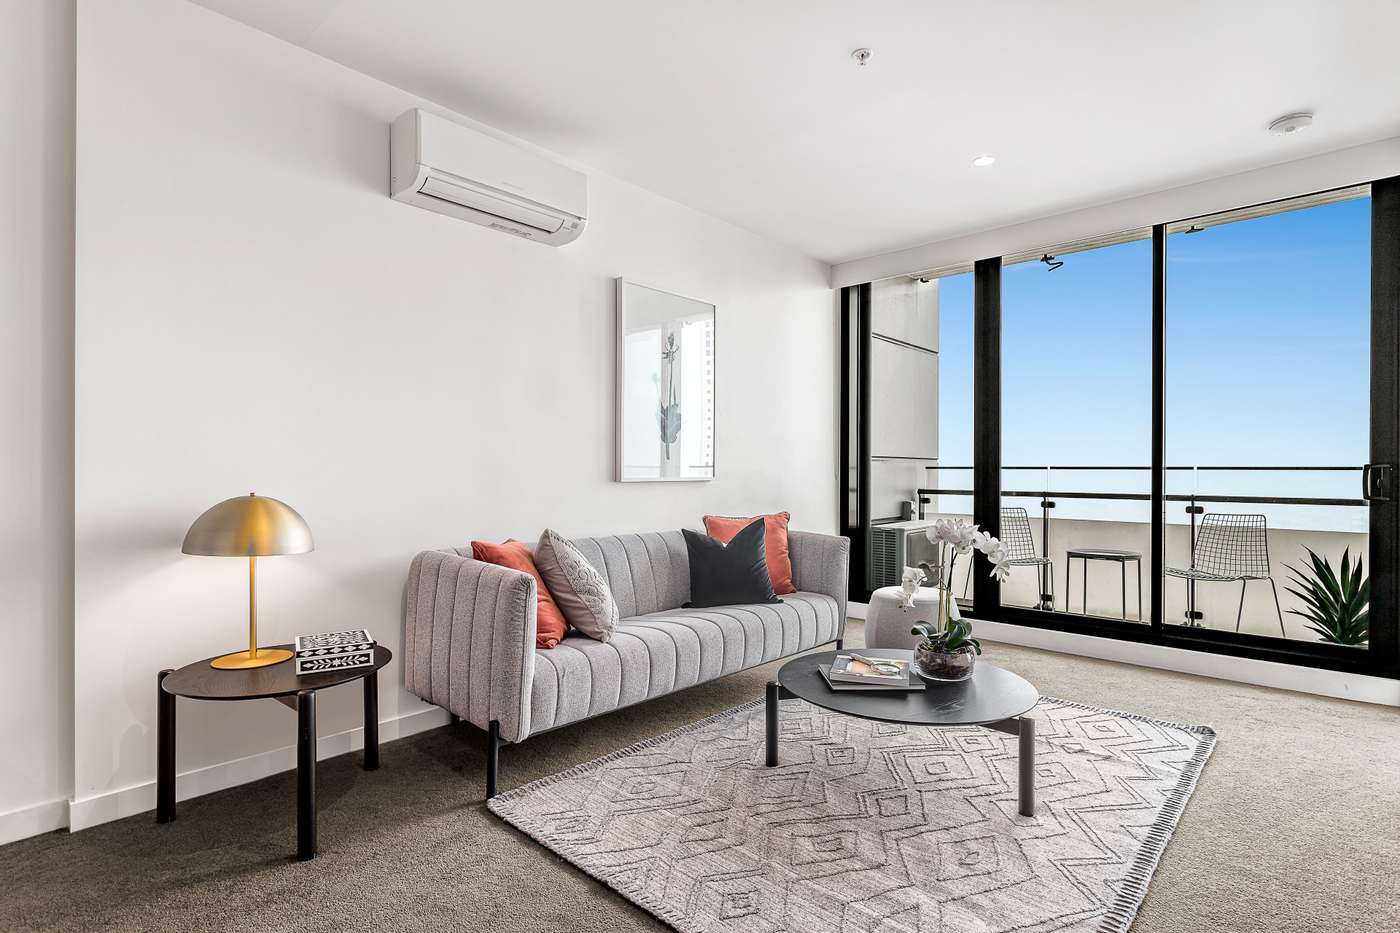 Main view of Homely apartment listing, 2406/45 Clarke Street, Southbank, VIC 3006